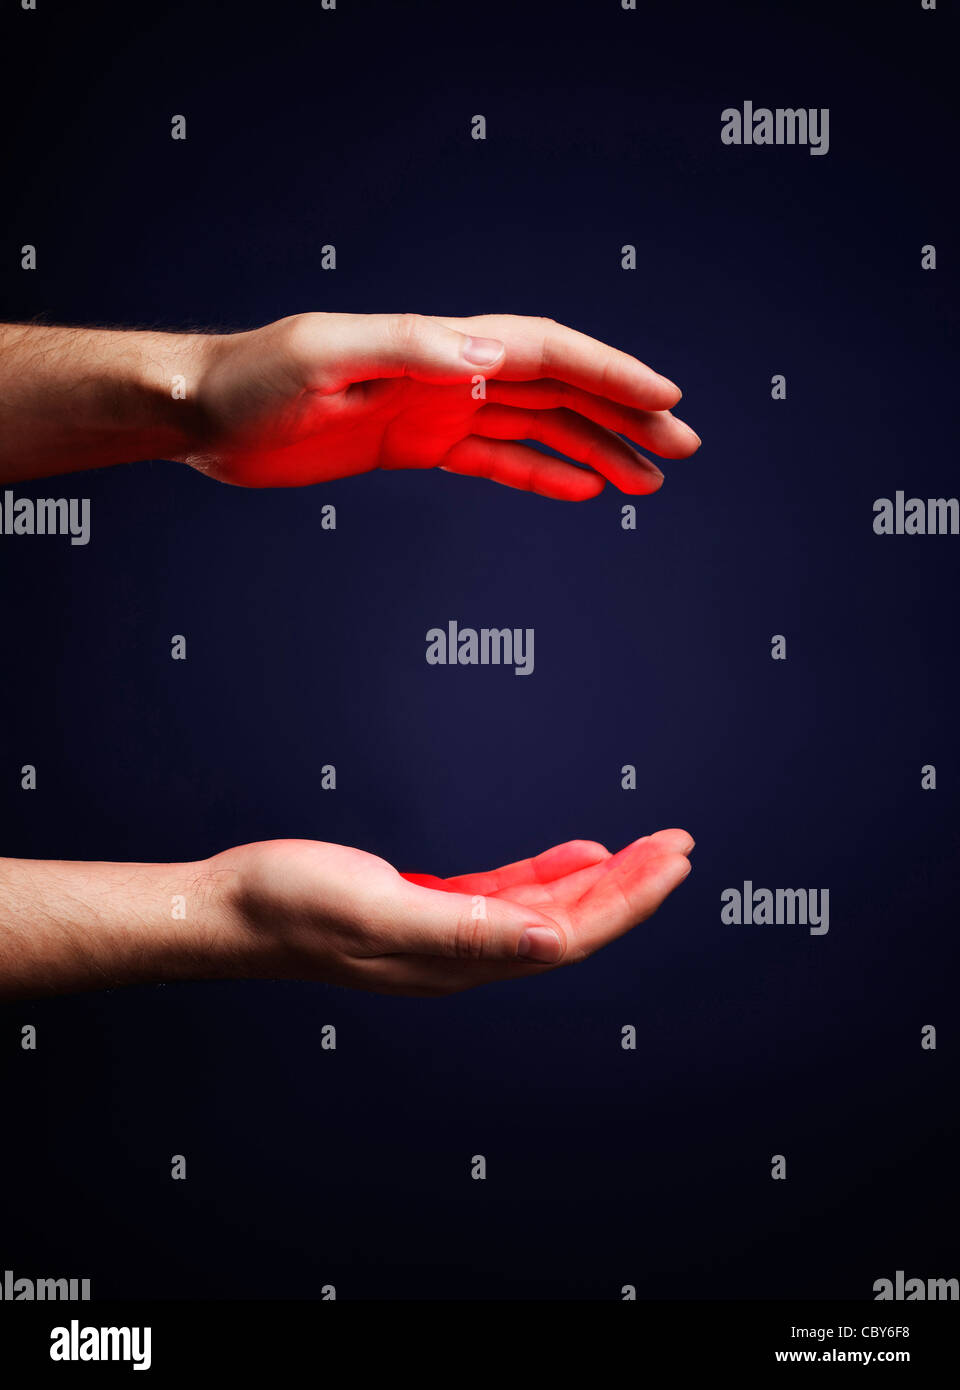 Hands of a man with a red glow. - Stock Image